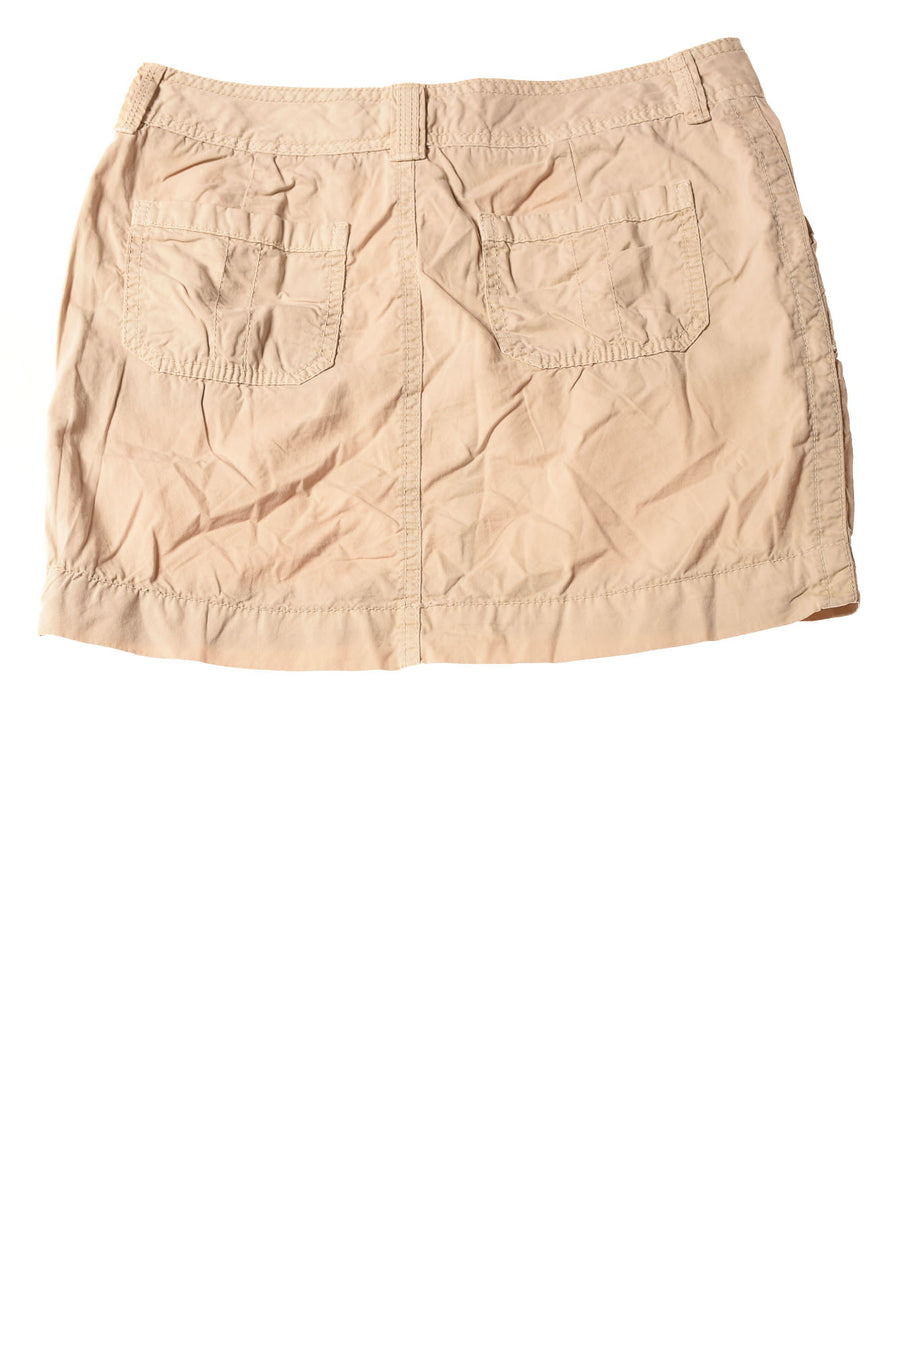 USED Old Navy Women's Skirt  0 Tan